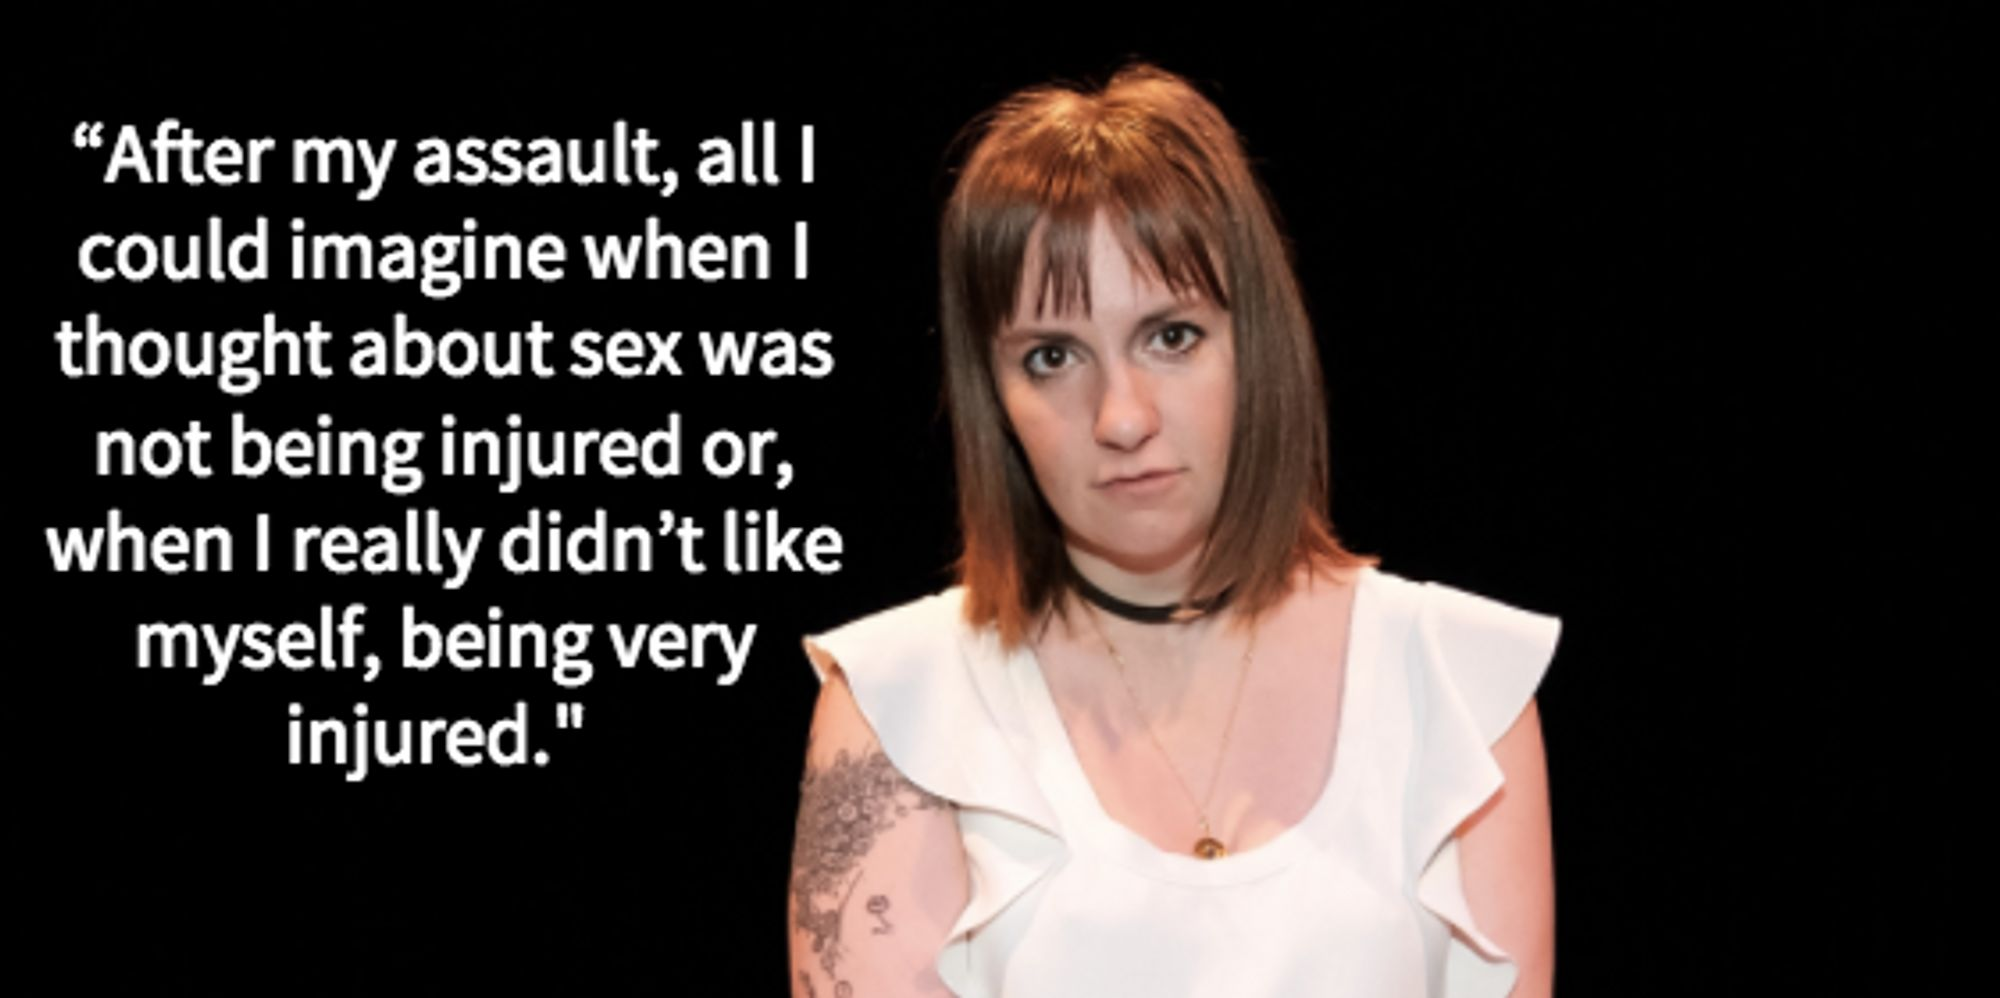 lena dunham opens up about sexual healing after assault in lena dunham opens up about sexual healing after assault in poignant essay the huffington post